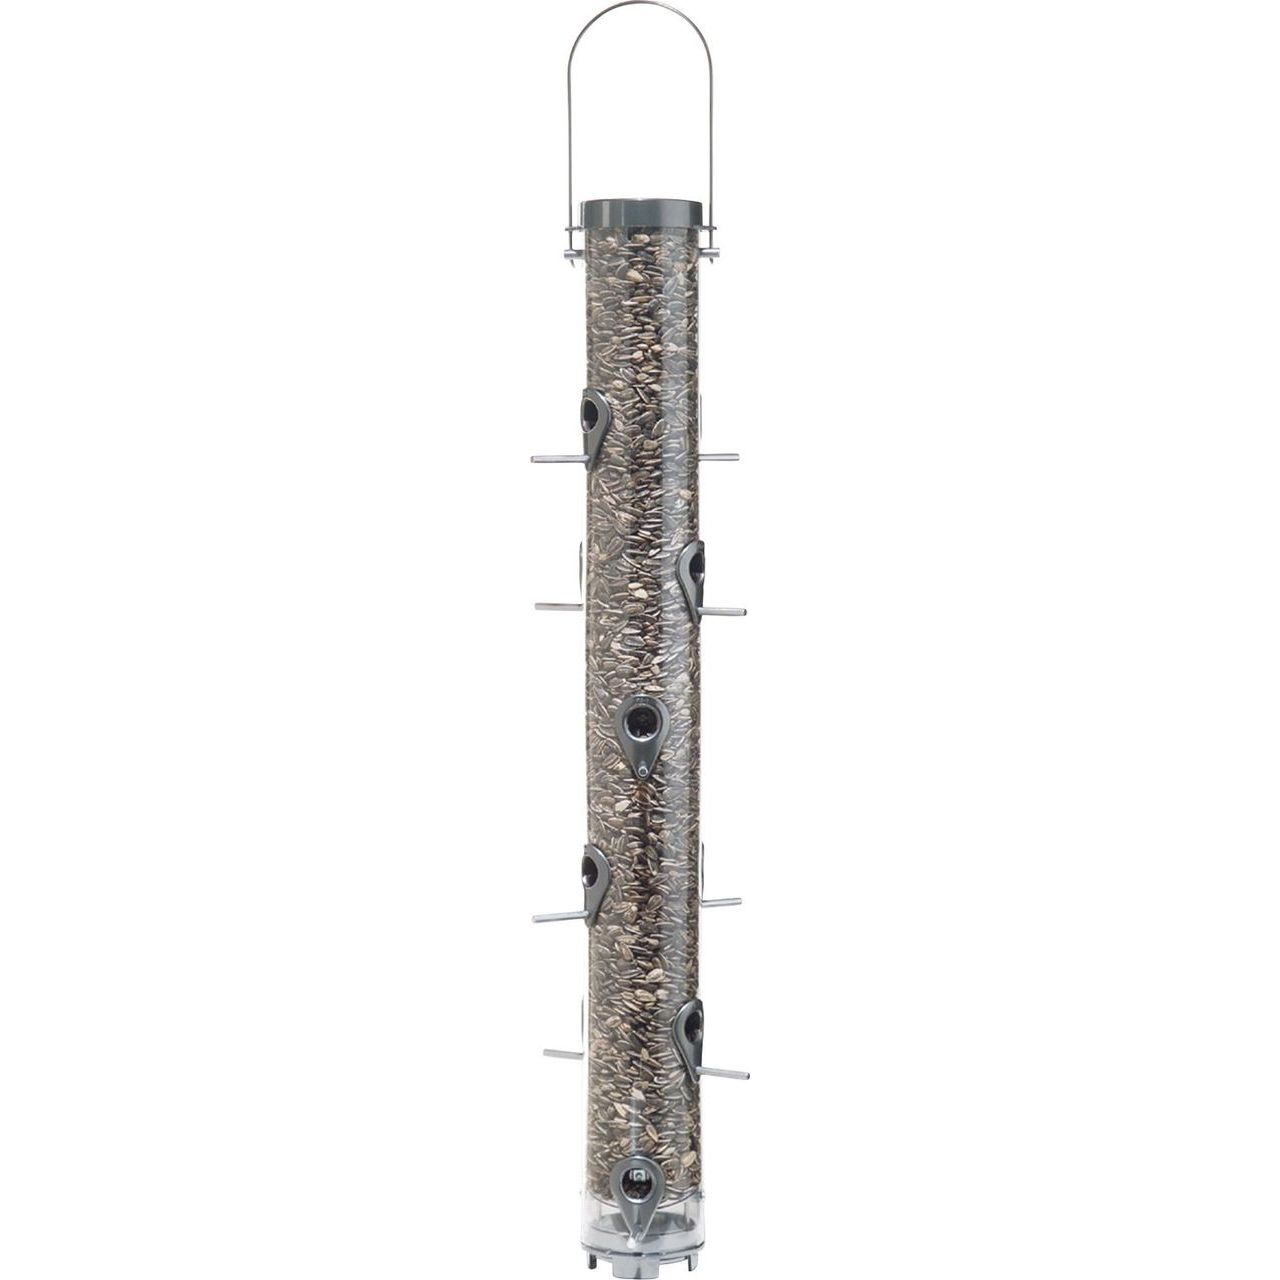 Classic 4 Lbs Capacity 12 Port Executive Wild Bird Feeder in Pewter